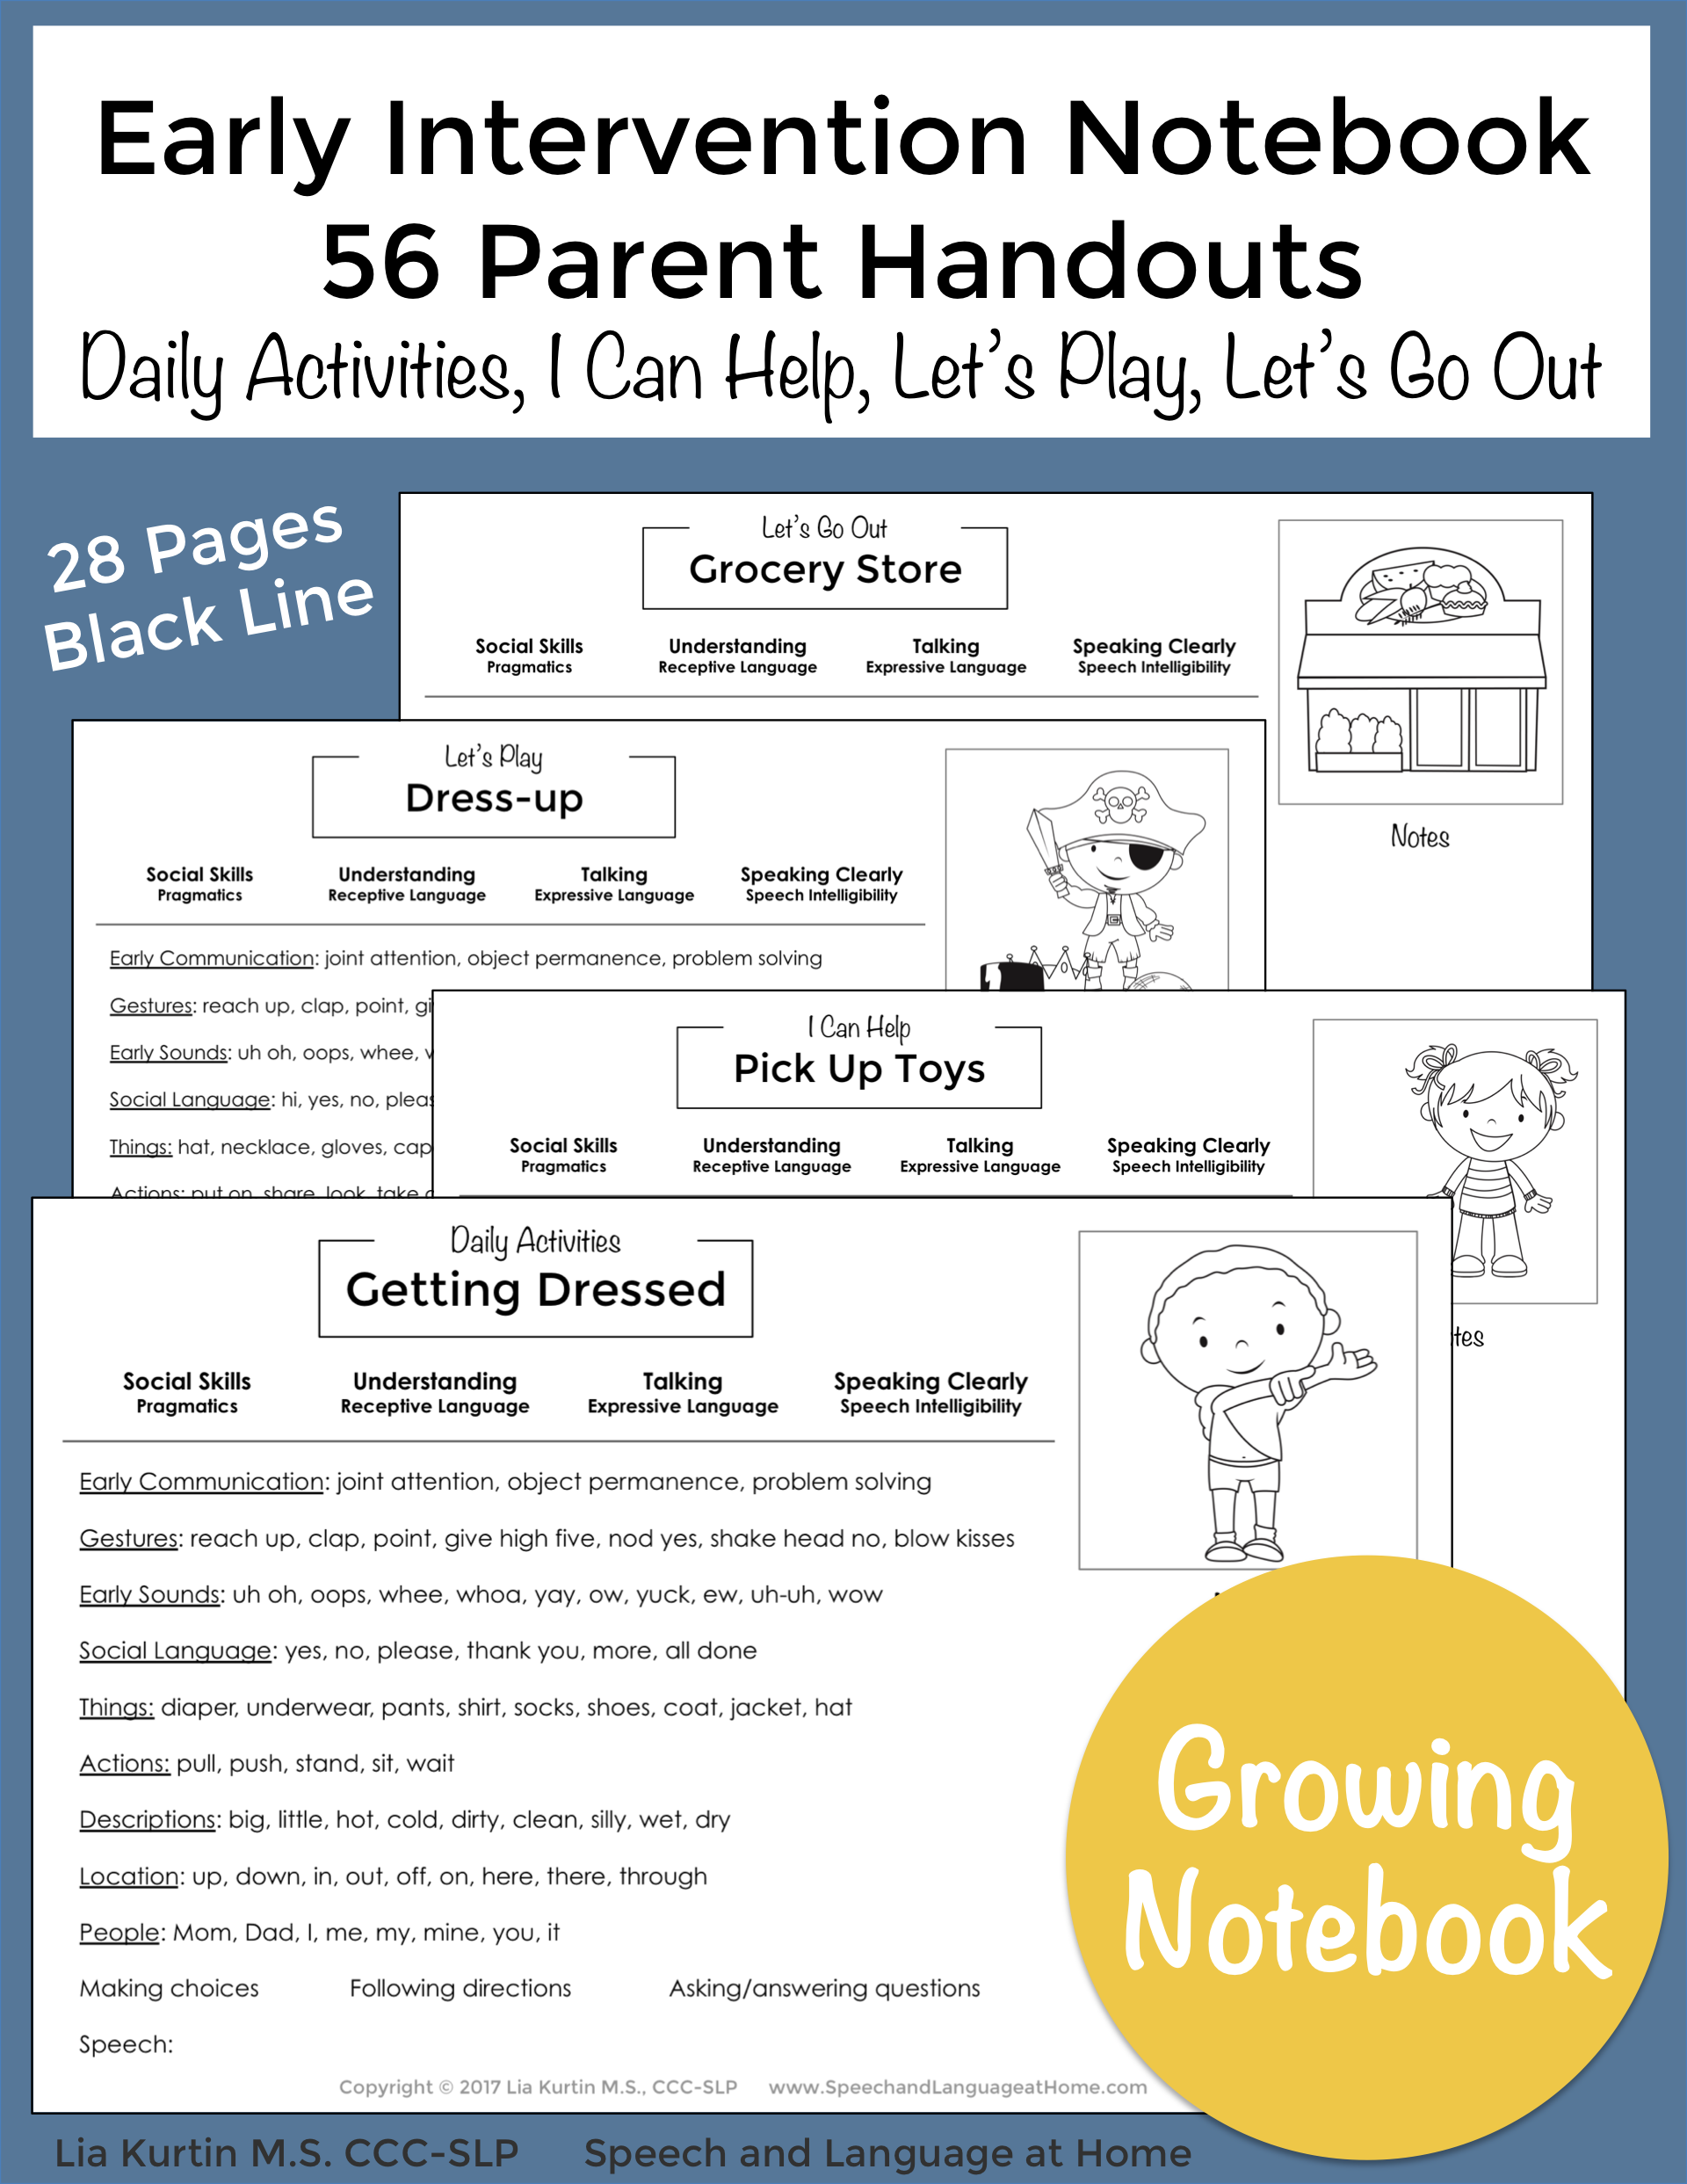 Early Intervention Handouts for Parents and Families by Lia Kurtin at Speech and Language at Home. Excellent resource for speech thearpy.